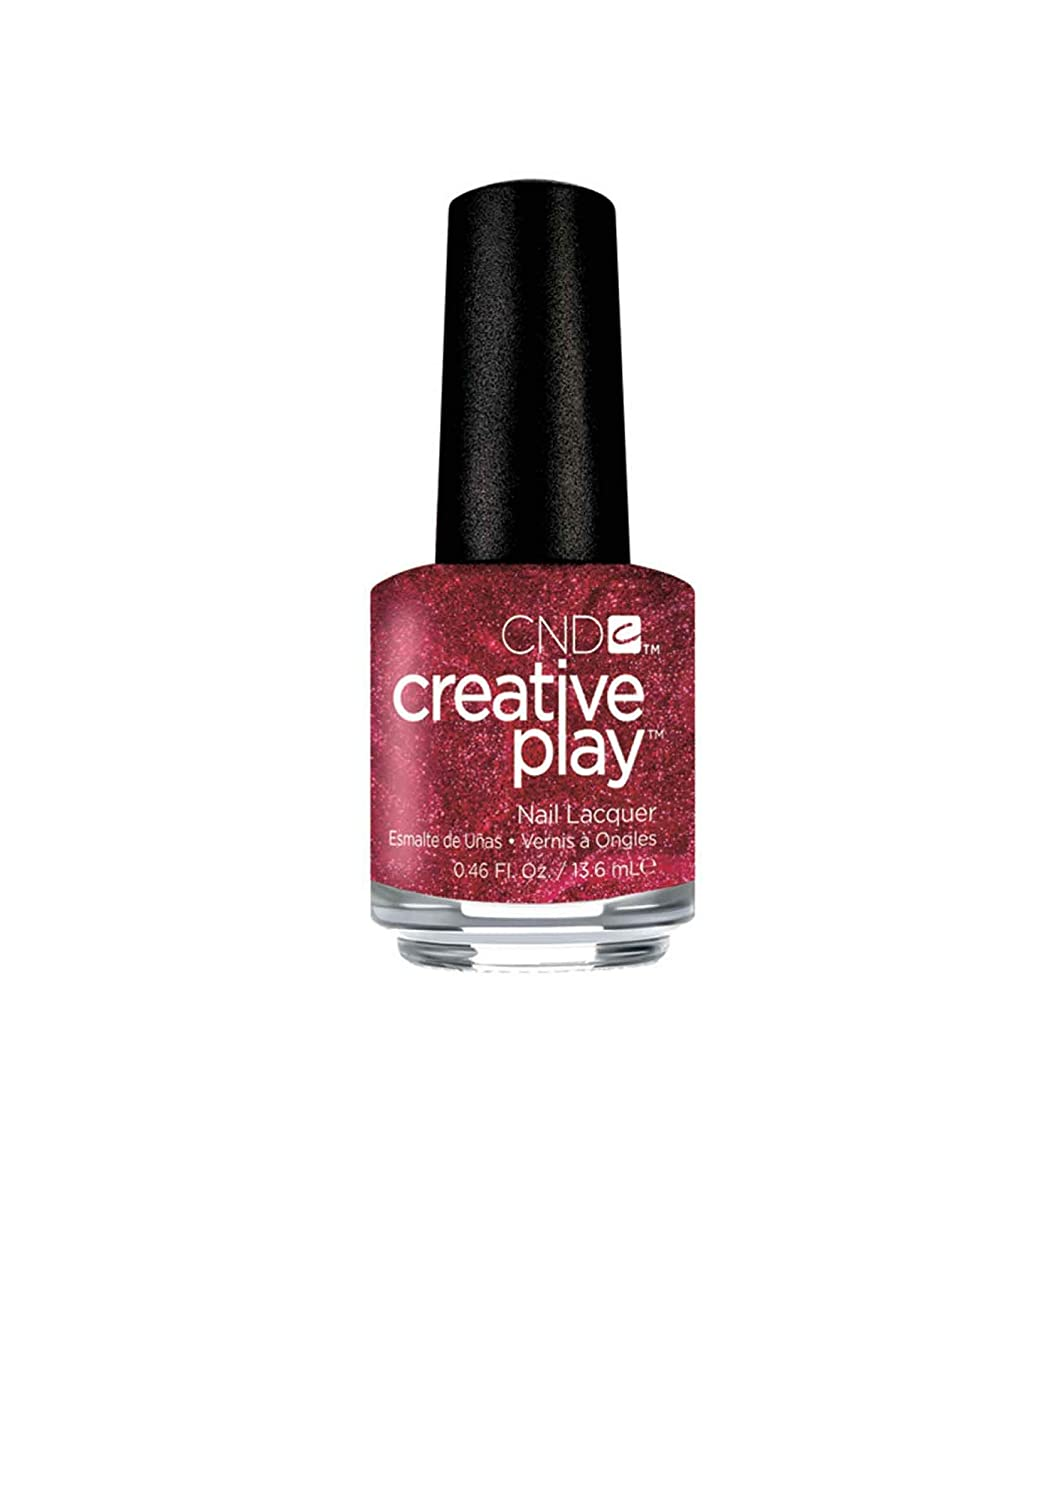 失効姿を消すネックレスCND Creative Play Lacquer - Crimson Like it Hot - 0.46oz / 13.6ml